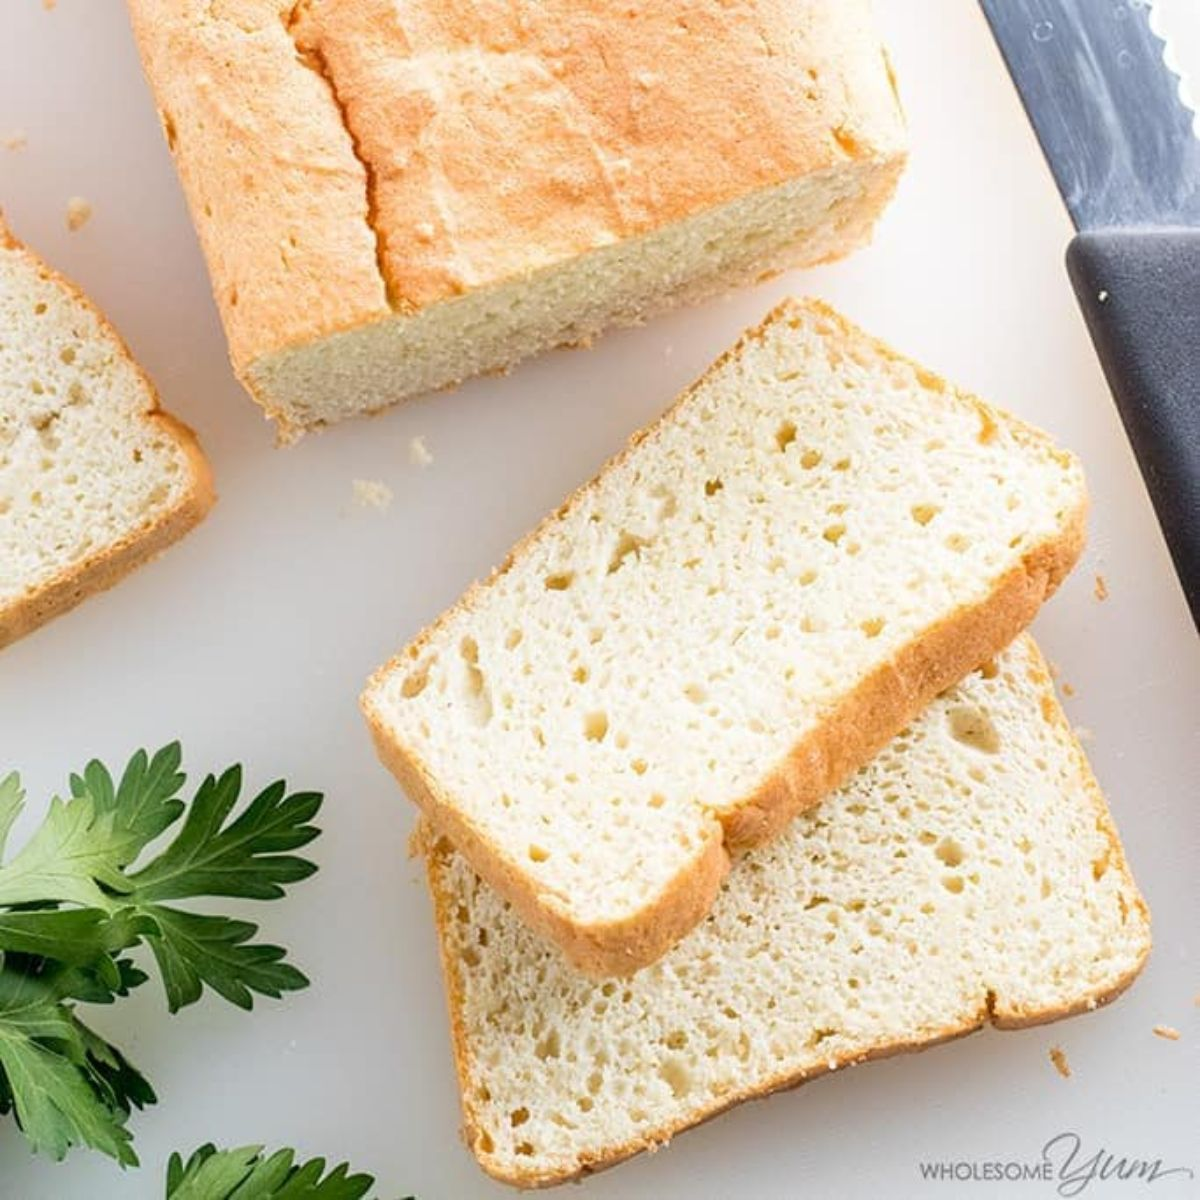 On a white surface is a partial shot of a rectangular loaf of white bread, two cut slices are in the front of the shot on top of each other. Parsely is on the left of the shot